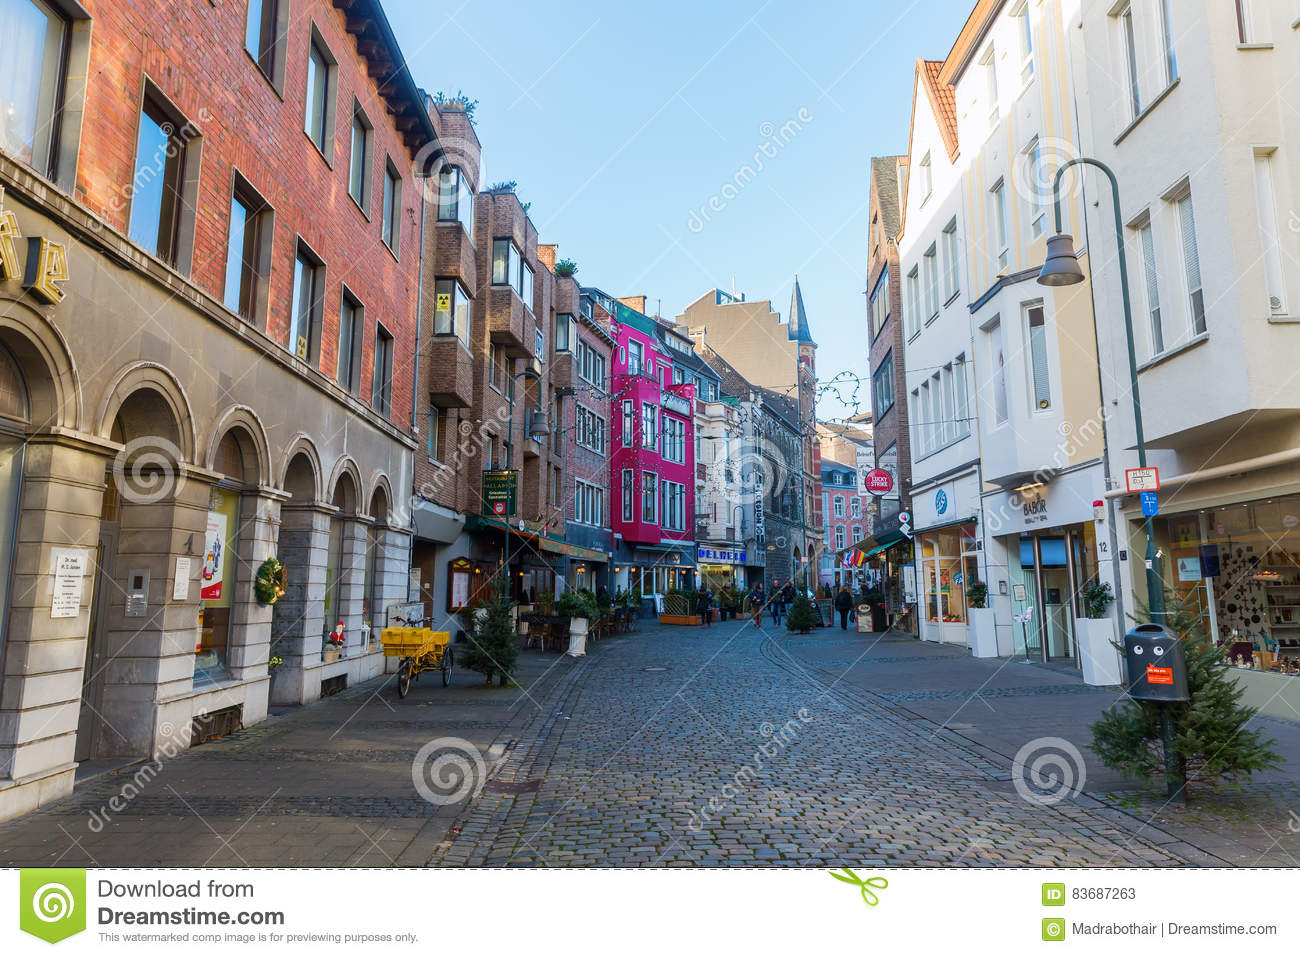 Shopping Street Schmiedstrasse In Aachen Germany